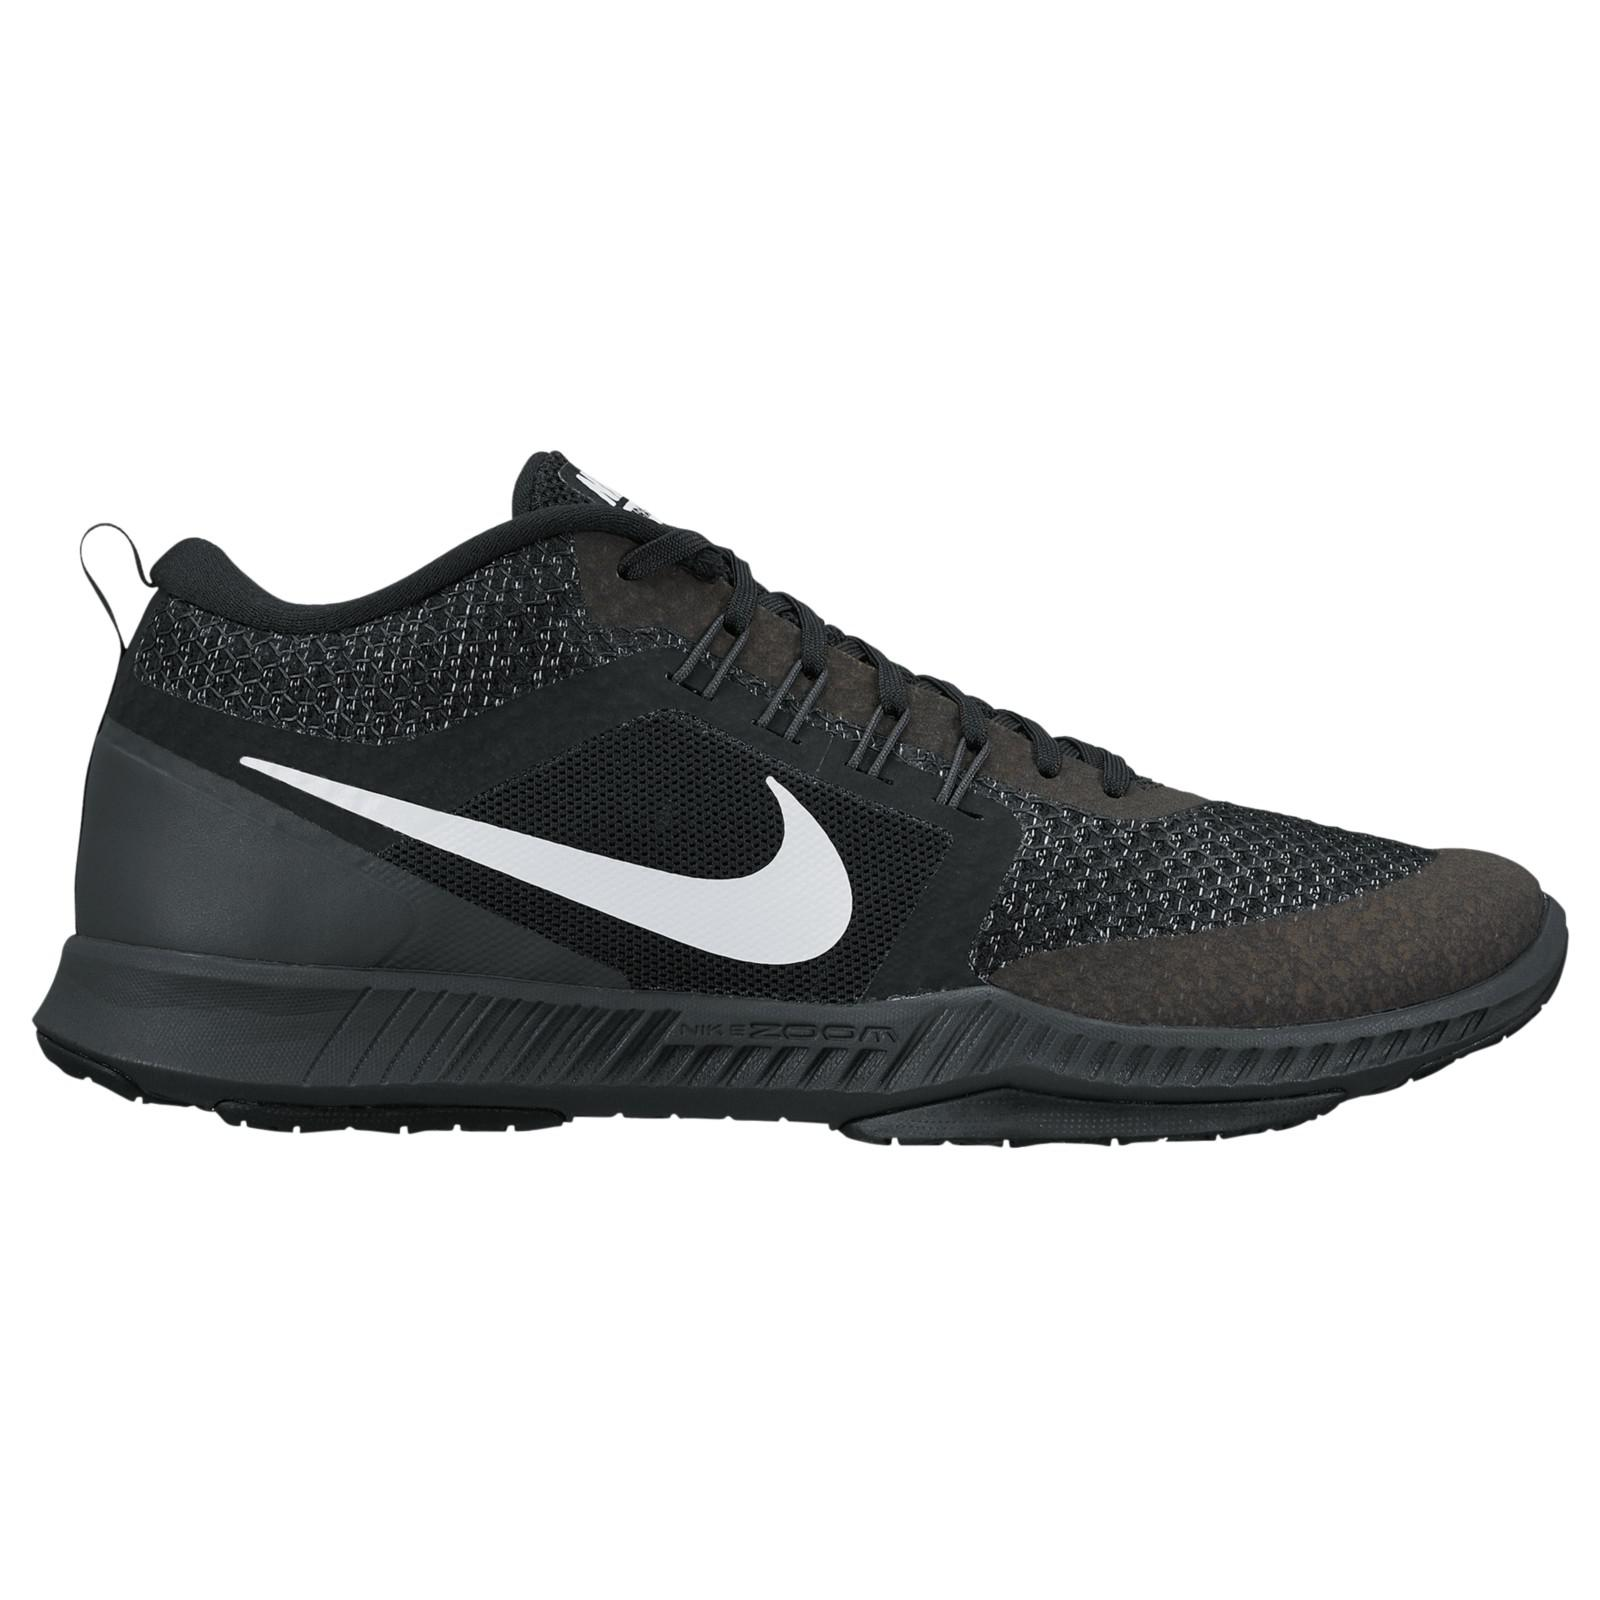 92992f5150e63 Nike Zoom Domination Men s Training Shoes in Black for Men - Lyst